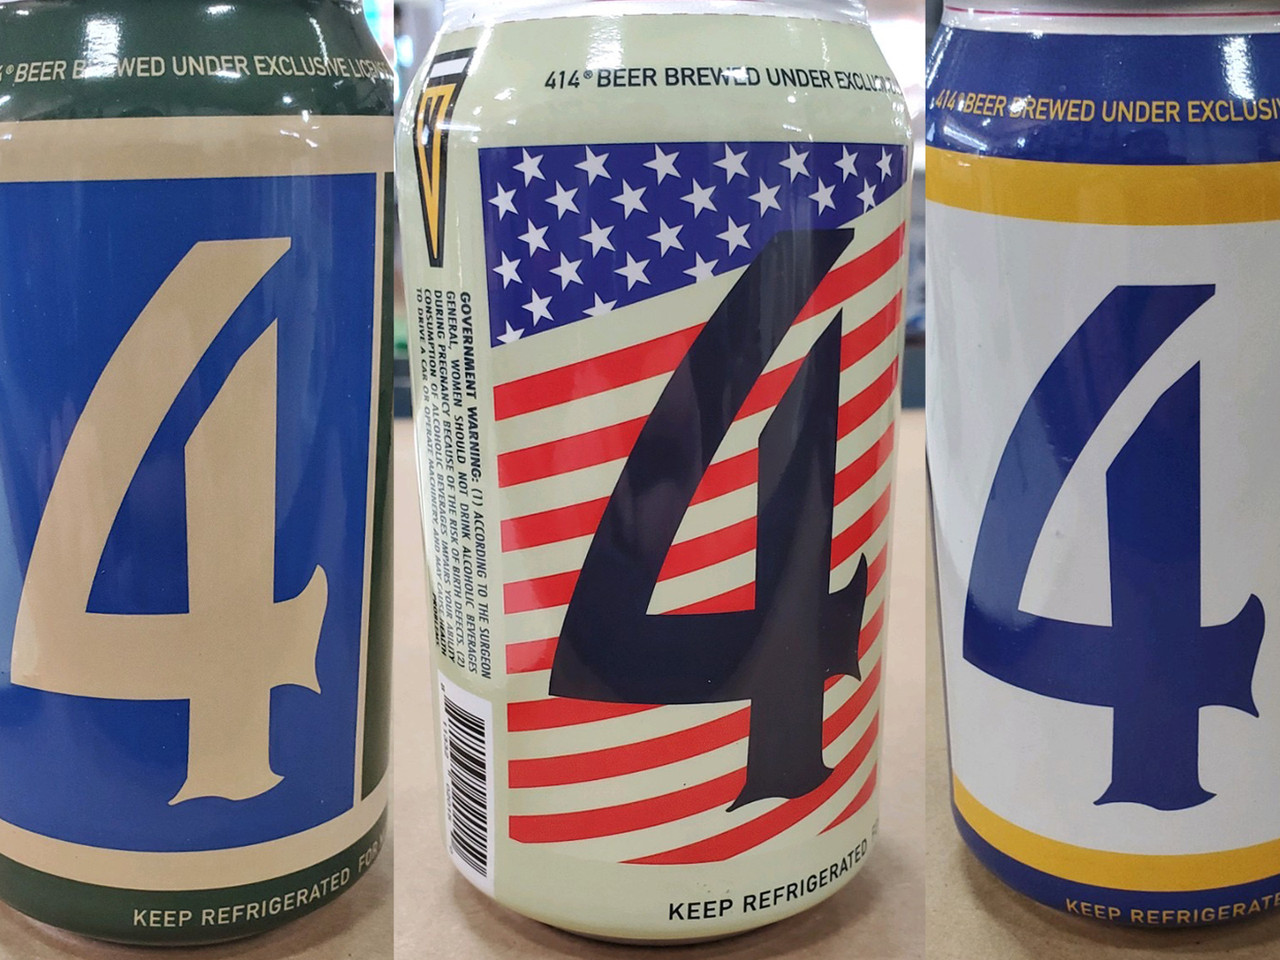 New 414 beer cans salute America, the Bucks and the Brewers